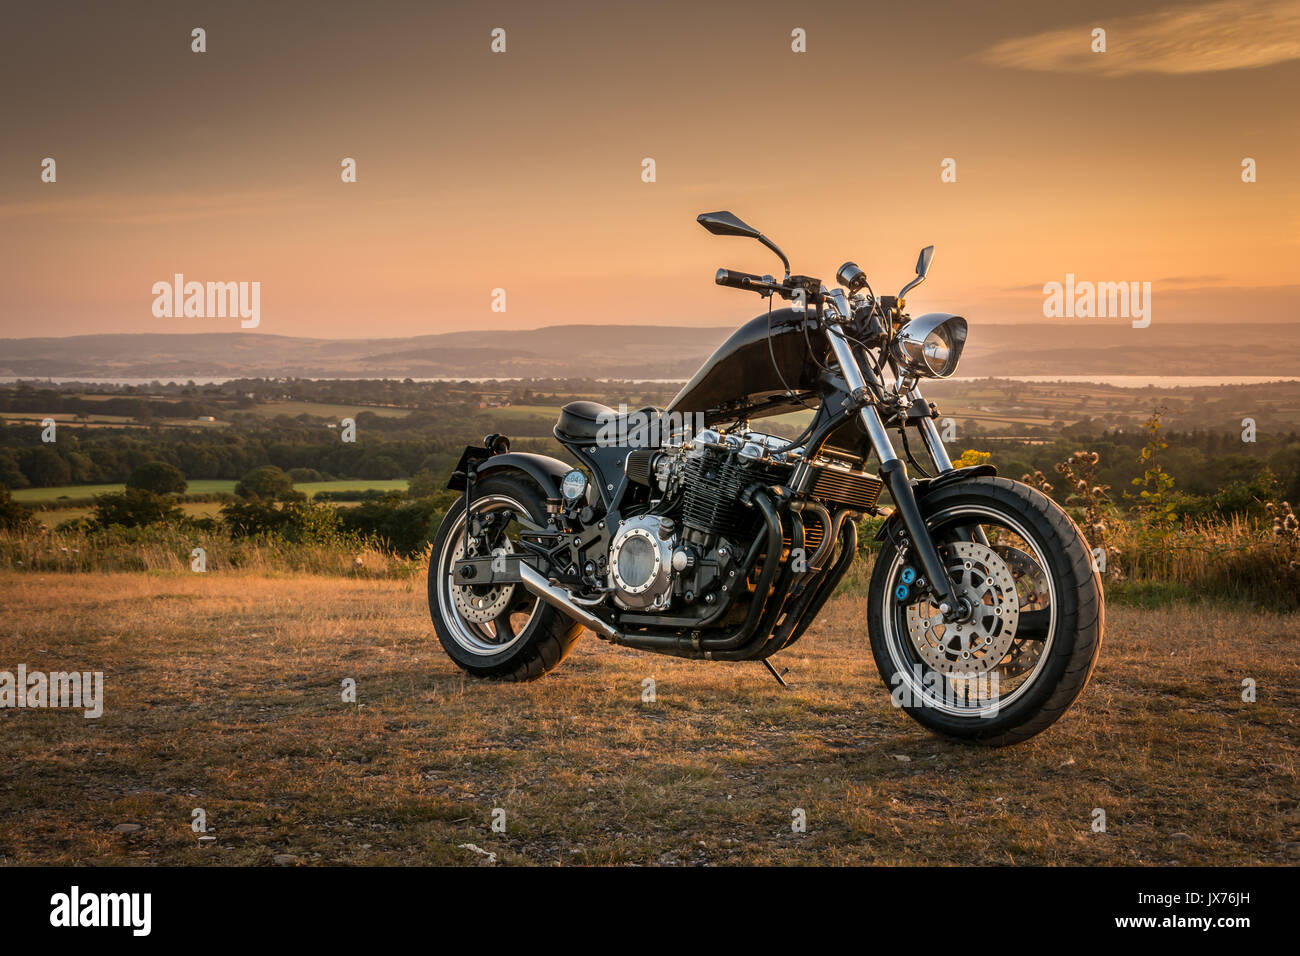 Custom made motorcycle parked during a quiet summer evening sunset. Stock Photo